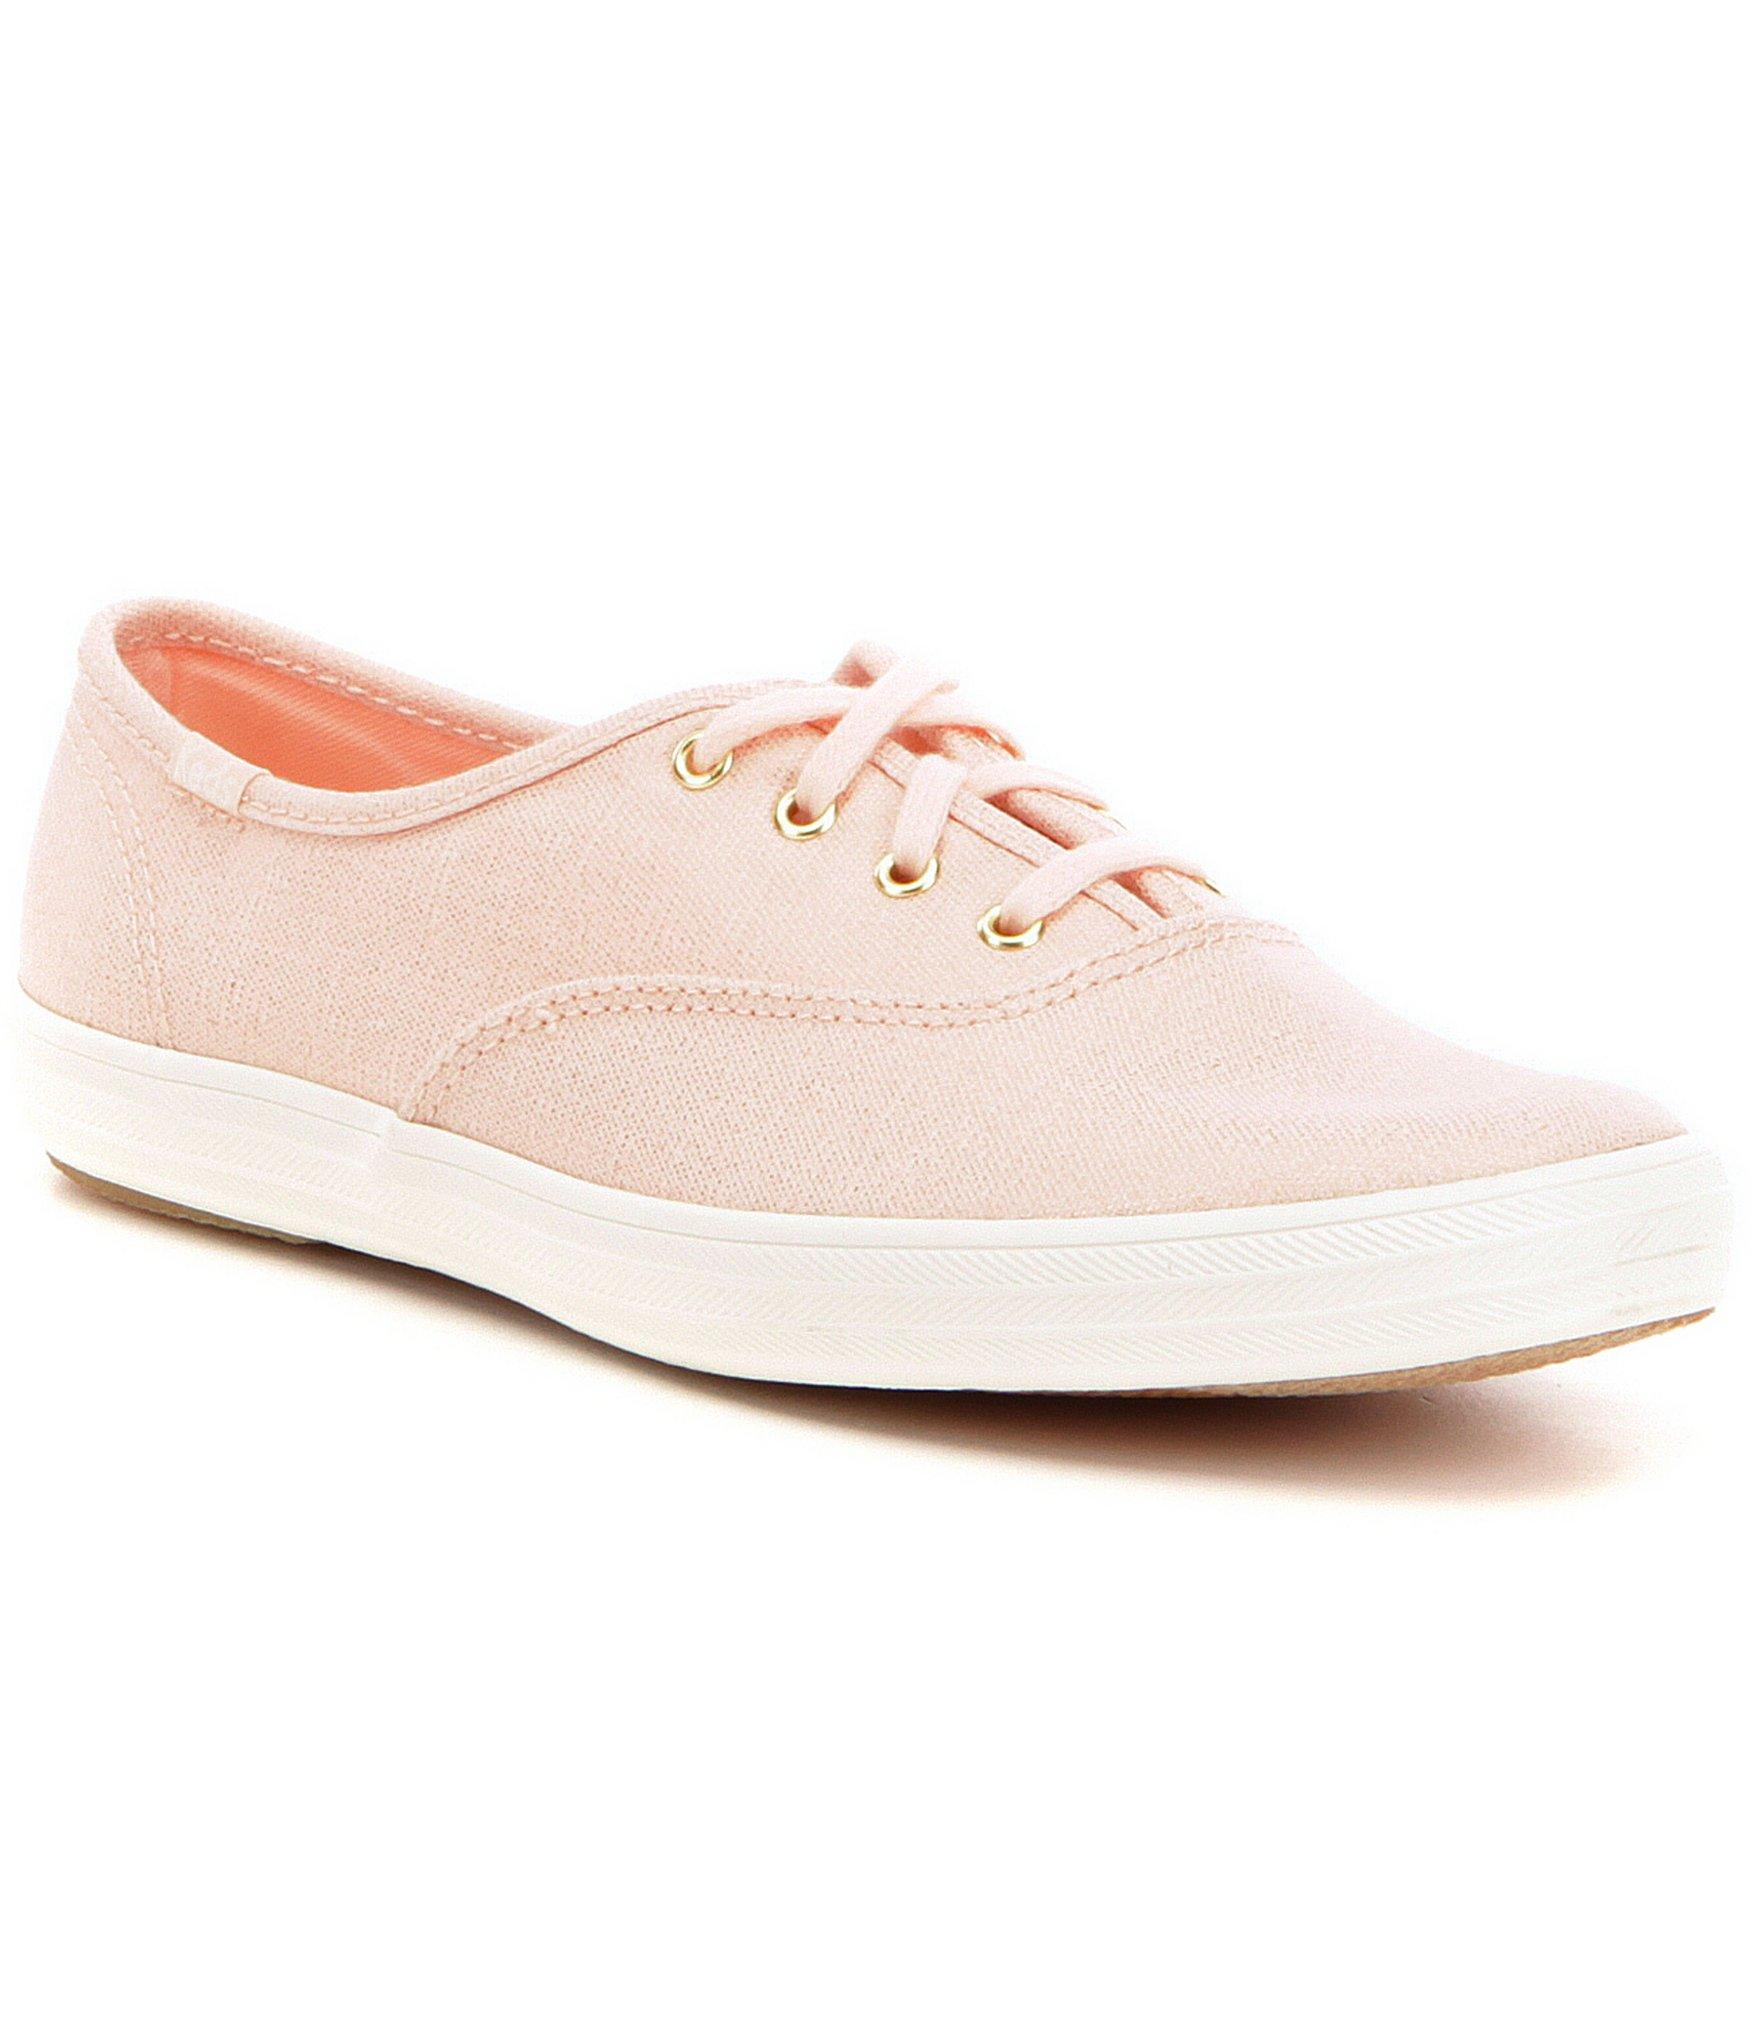 dbf39423e4531 Lyst - Keds Champion Metallic Twill Lace Up Sneakers in Pink